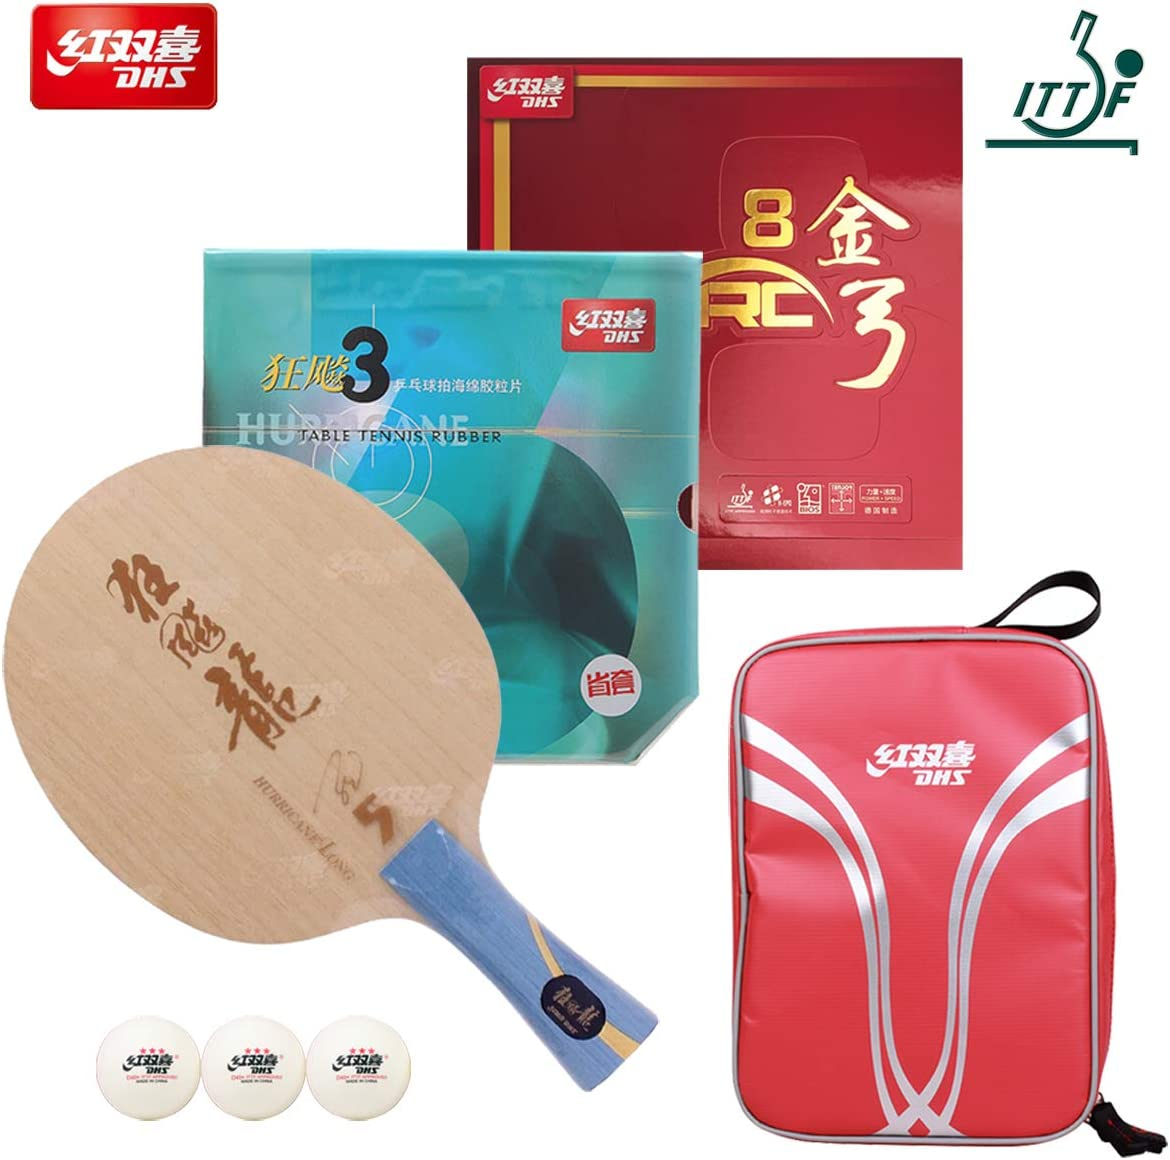 DHS Hand Assembled Professional Table Tennis Racket - Professional Ping Pong Racket Combination Hurricane Long-5 Table Tennis Blade Neo Hurricane 3 (Provincial) Gold ARC 8 Rubber